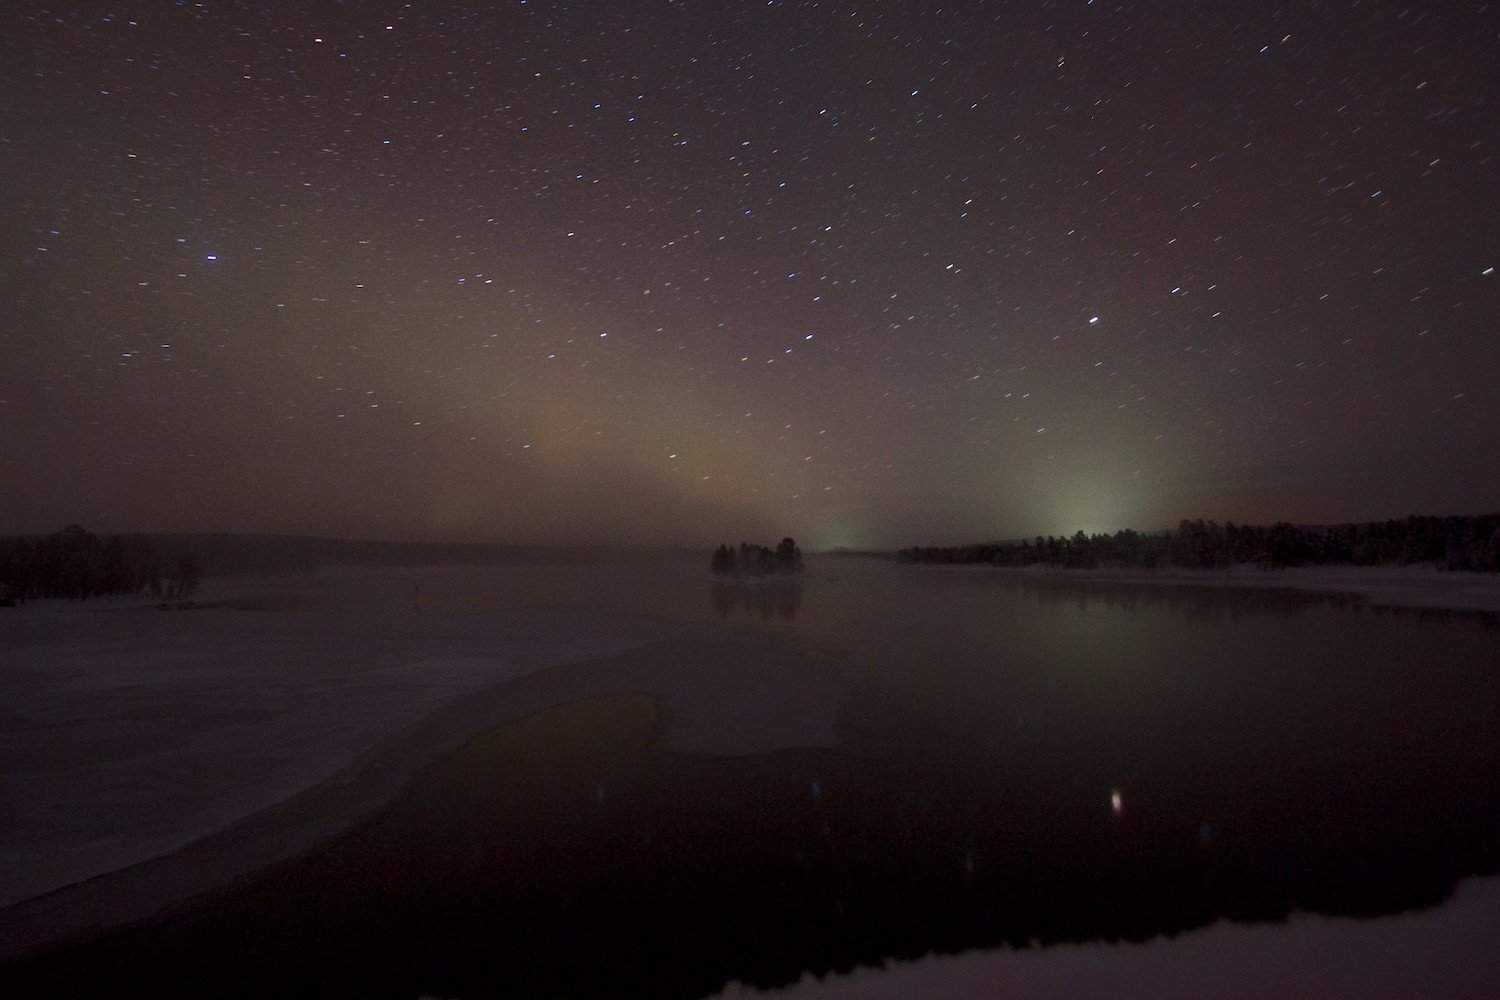 Northern Lights in Russia - Paul Williams via Flickr